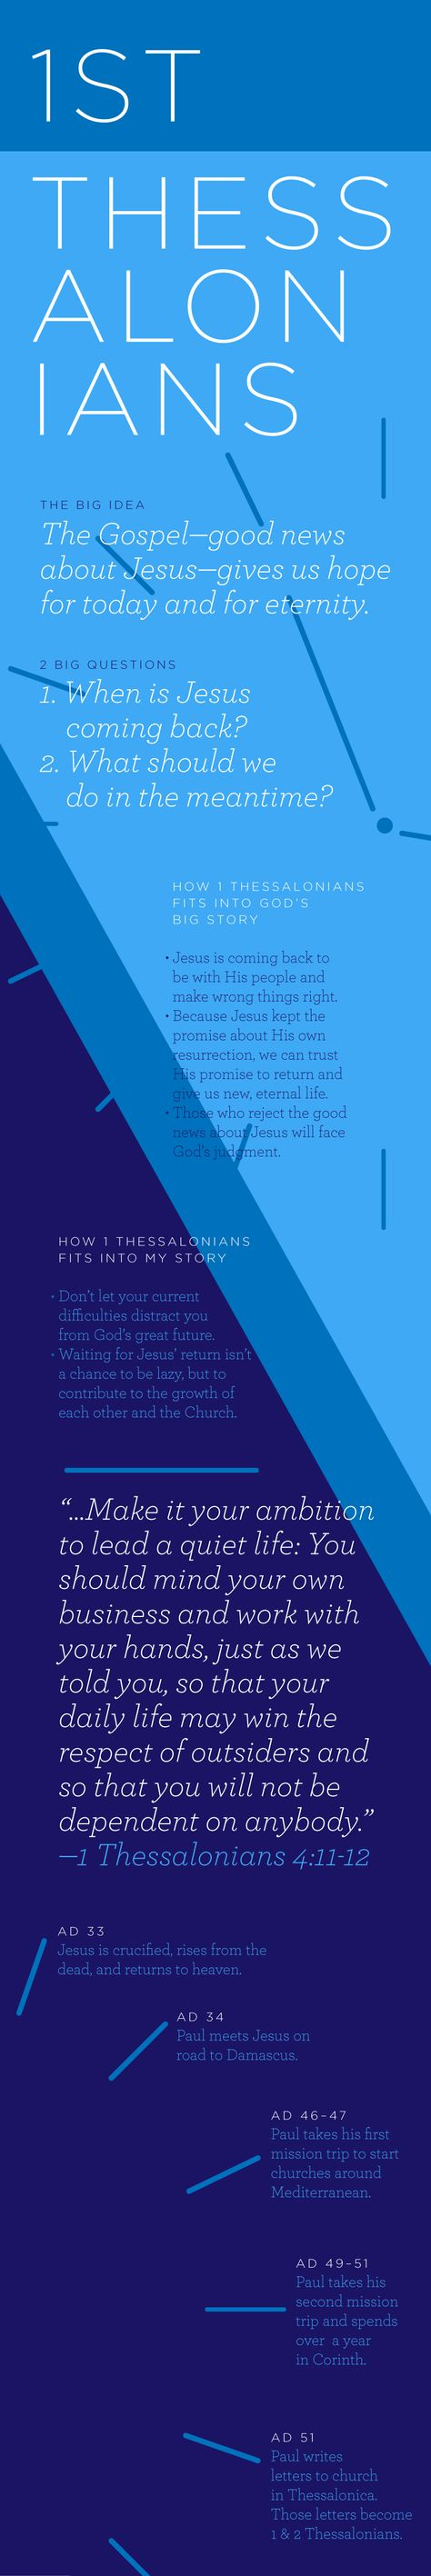 Everything You Need To Know About 1 Thessalonians | Articles | NewSpring Church